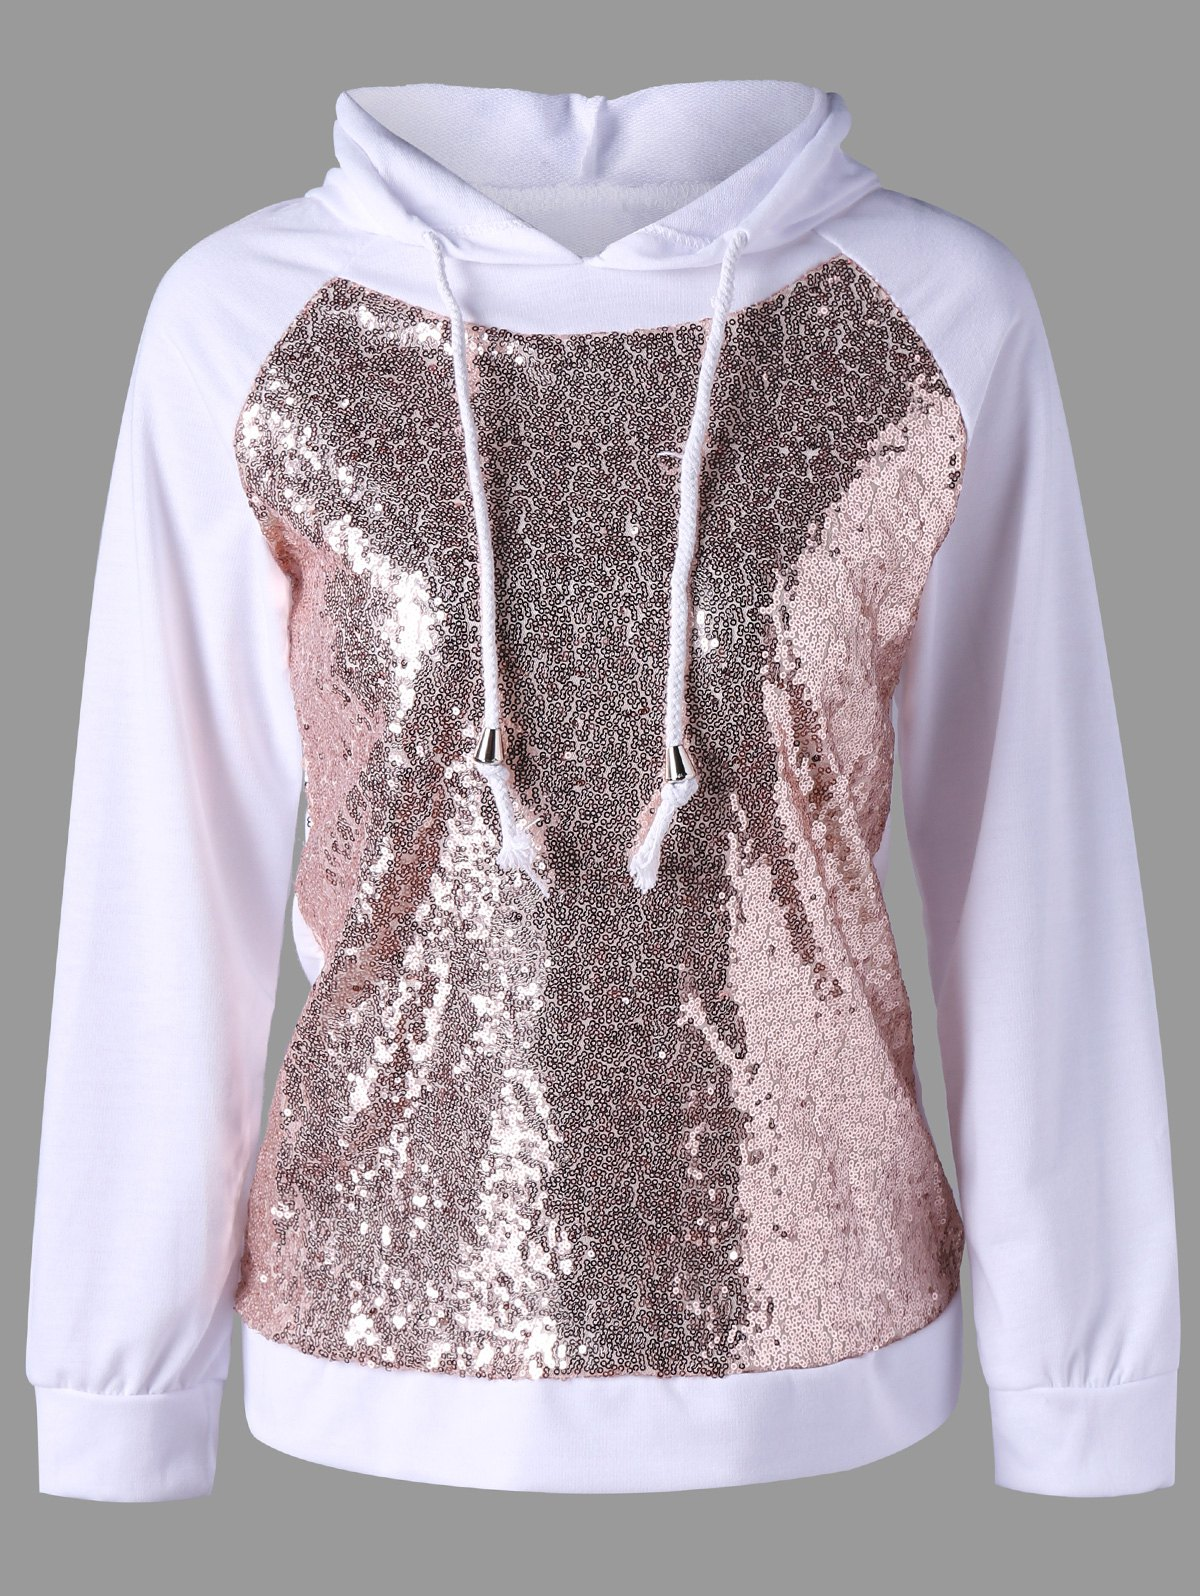 Raglan Sleeve Sequined Sparkly Hoodie - WHITE XL